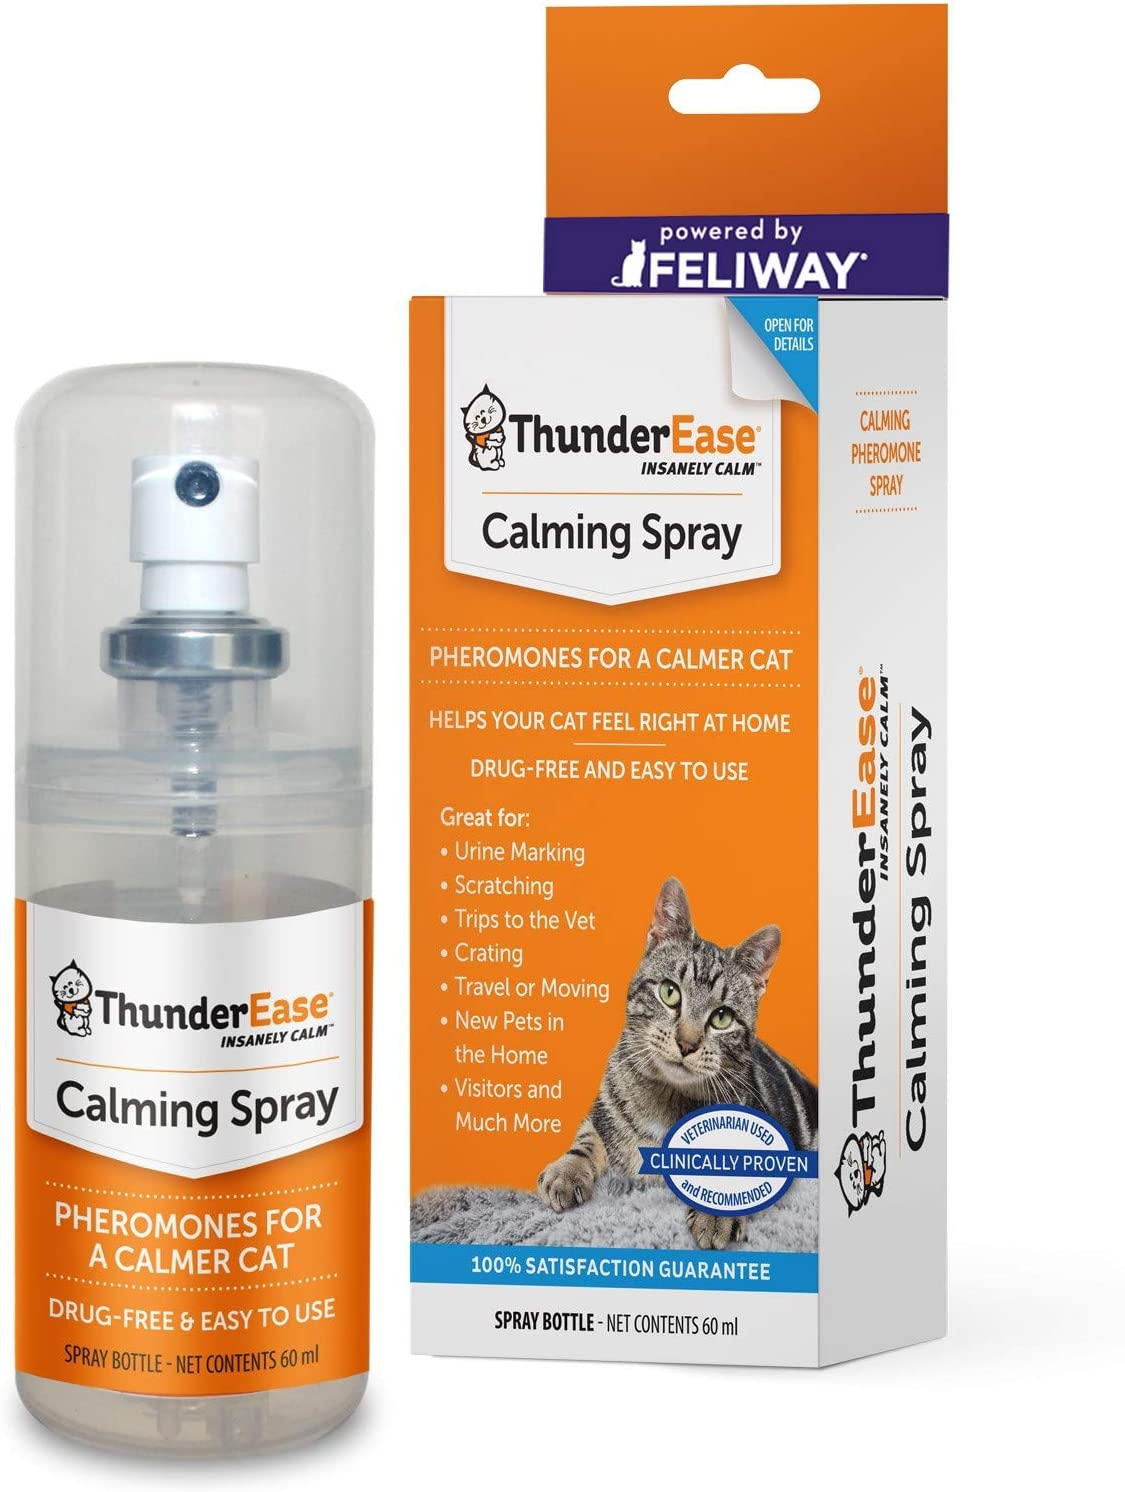 ThunderEase Popular brand Cat Calming Pheromone Spray Powered Cash special price FELIWAY by R